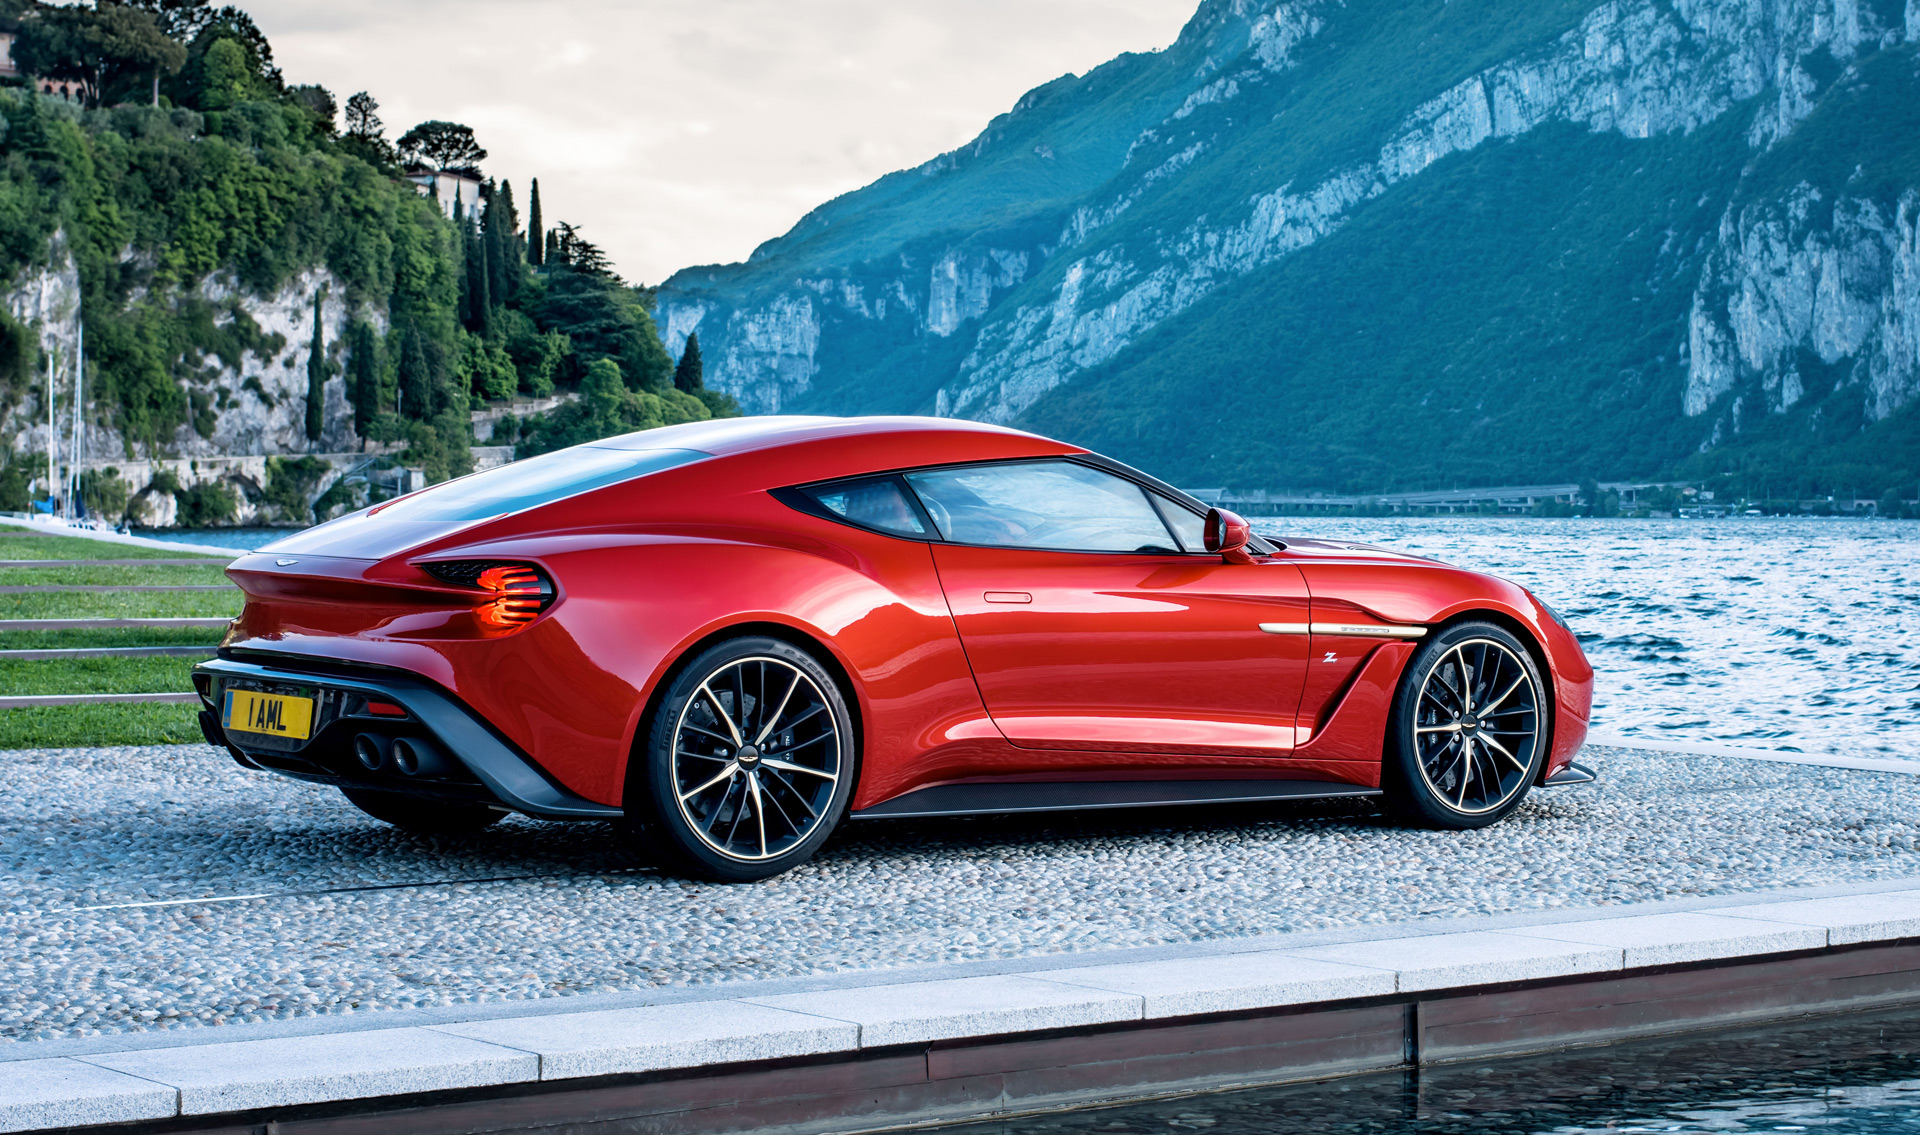 1104615 aston Martin To Build 99 Vanquish Zagato Coupes on audi 100 series